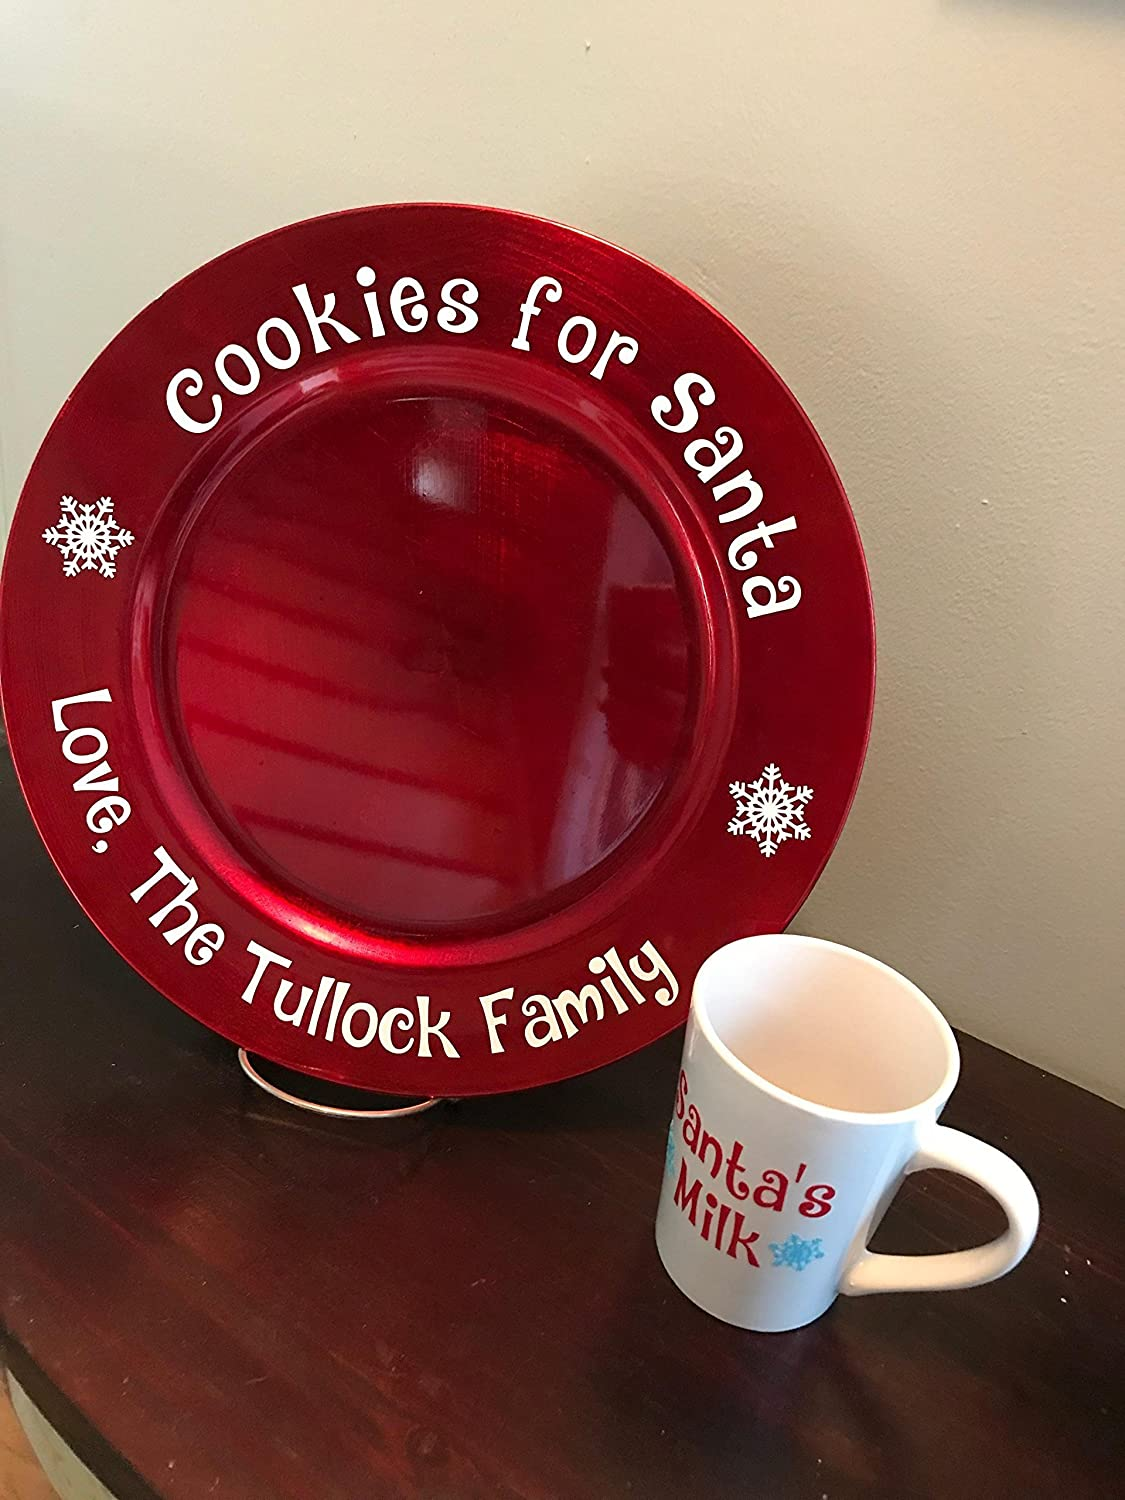 Personalized Cookies For Santa Plate and Mug Set